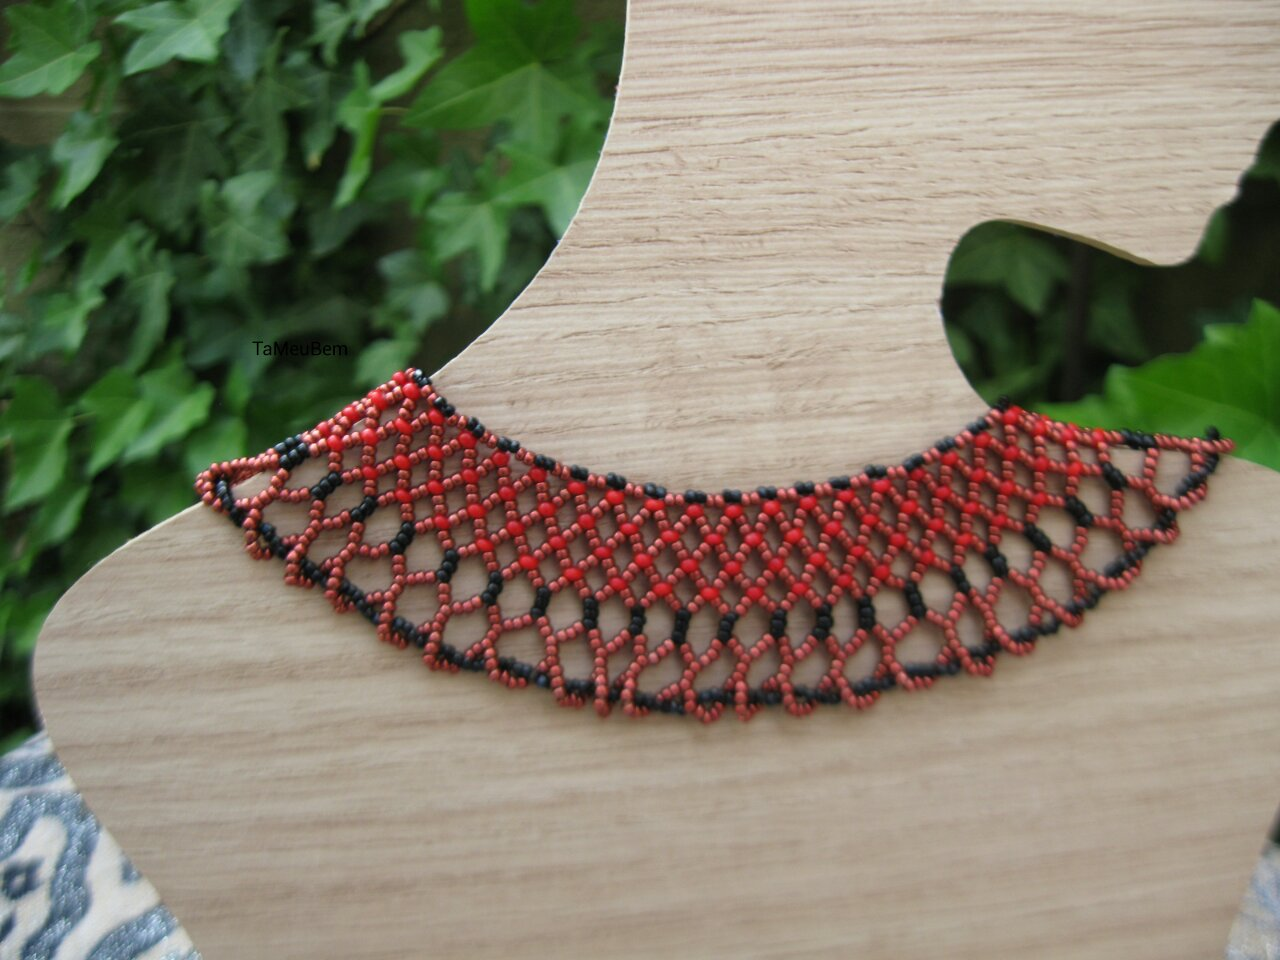 egyptian-beaded-necklace-by-ta-meu-bem-jewelry_16839886347_o.jpg